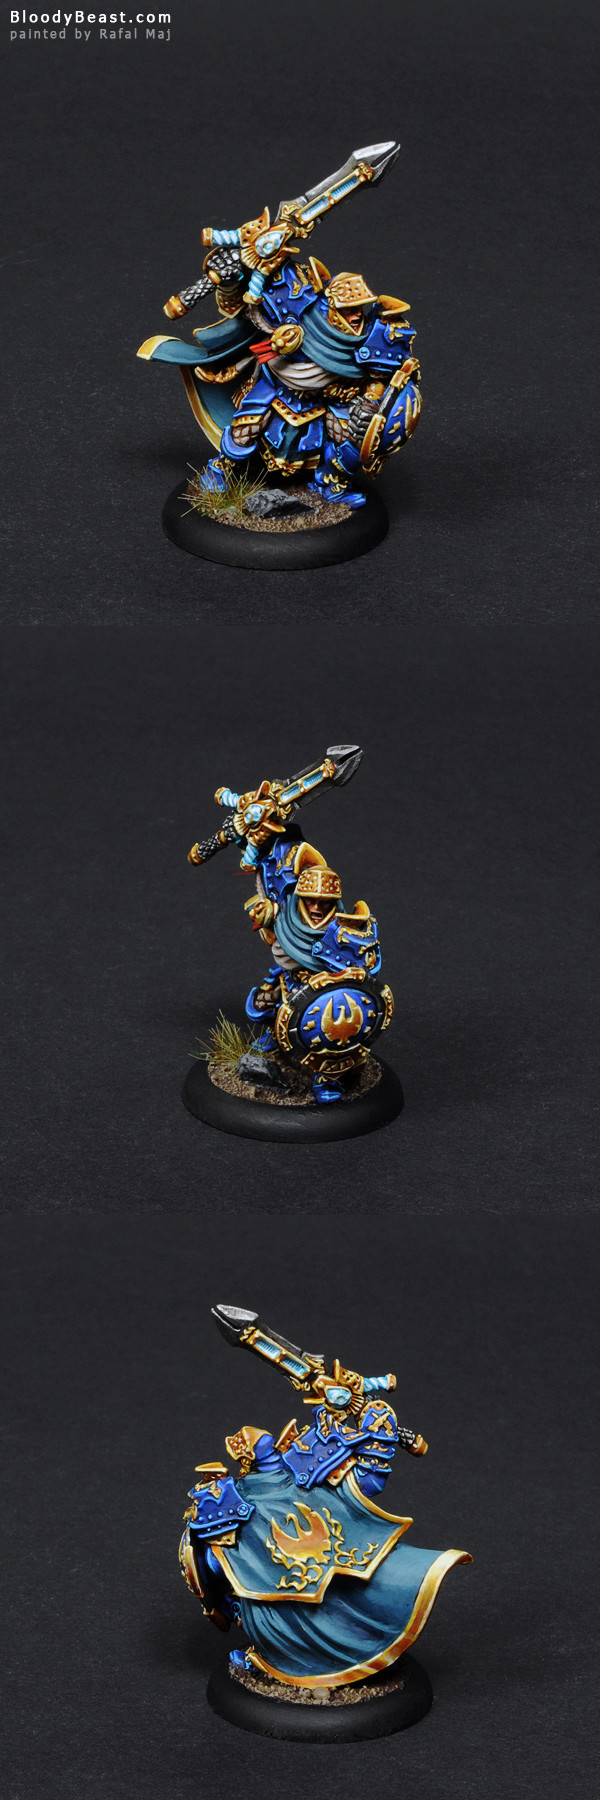 Stormblade Captain painted by Rafal Maj (BloodyBeast.com)